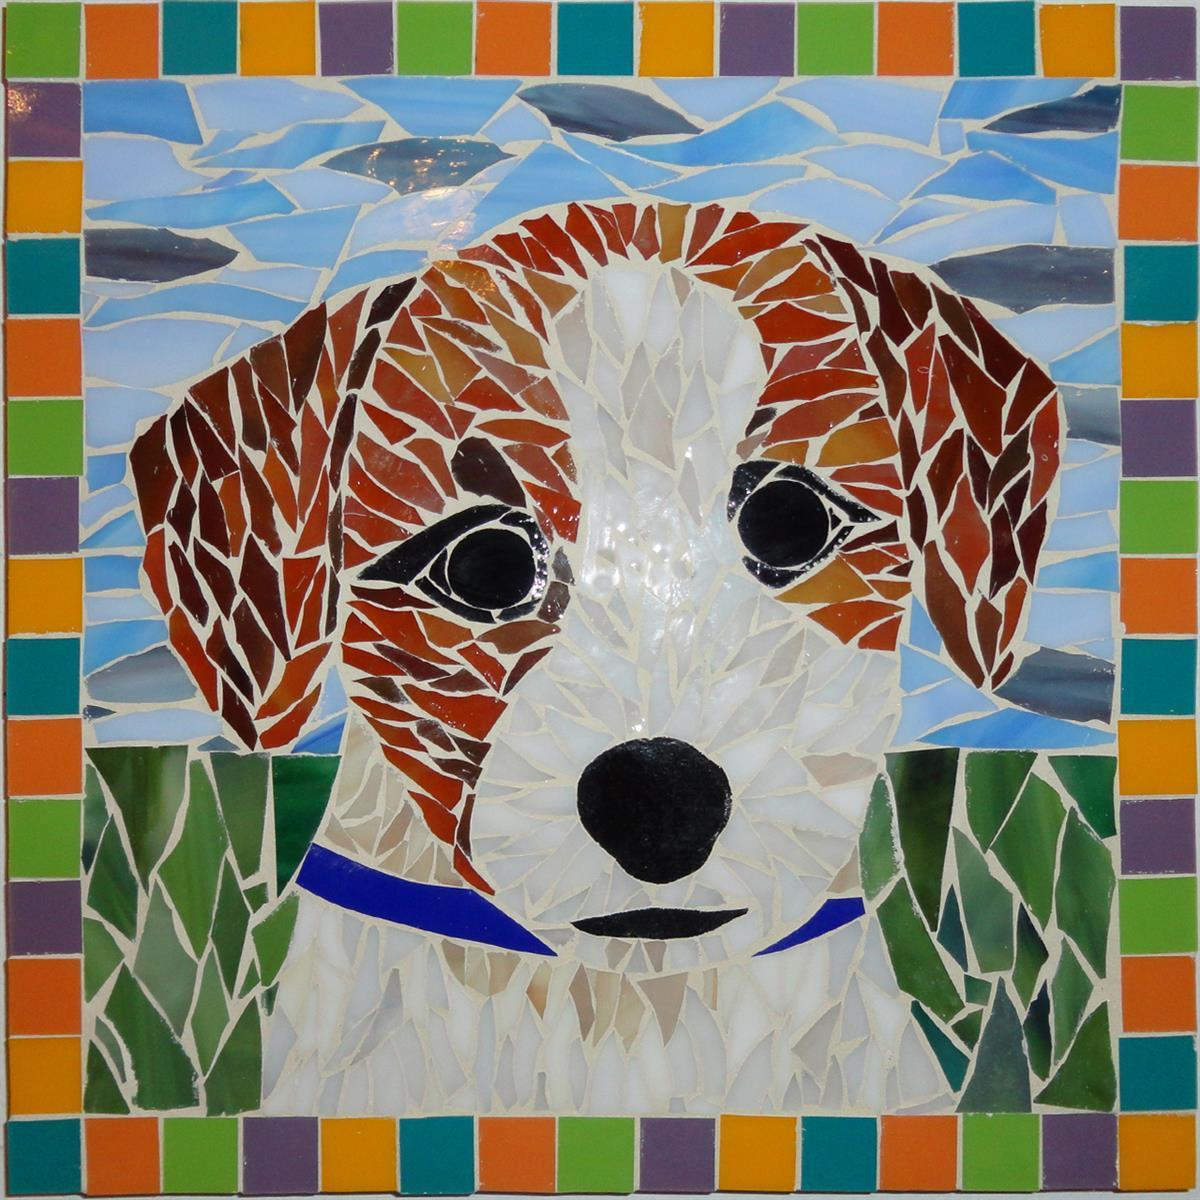 Pet mosaic class project example.